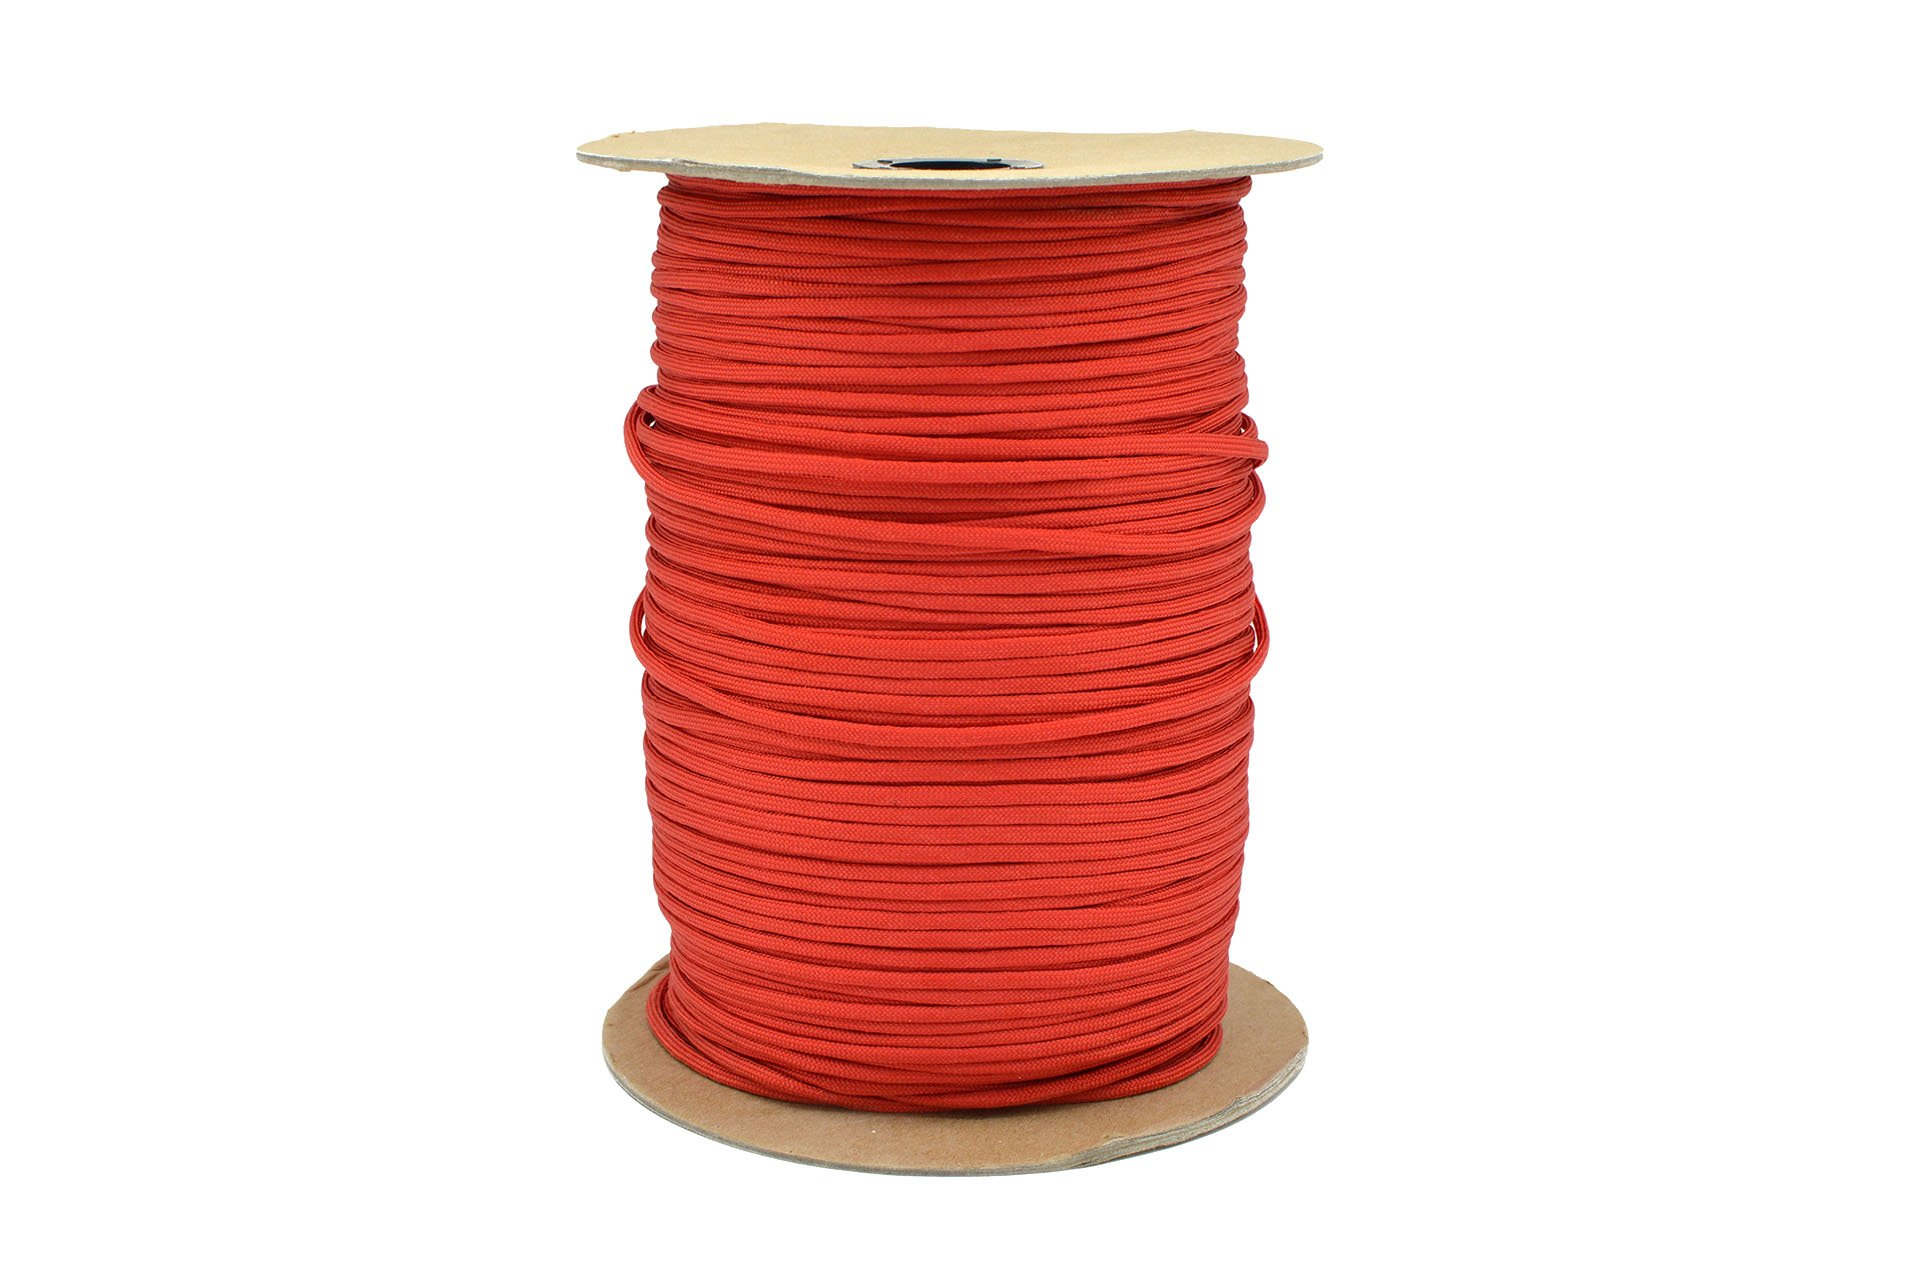 Paracord Rope 550 Type III Paracord - Parachute Cord - 550lb Tensile Strength - 100% Nylon - Made In The USA (Red, 50 Feet) by Paracord Rope (Image #2)